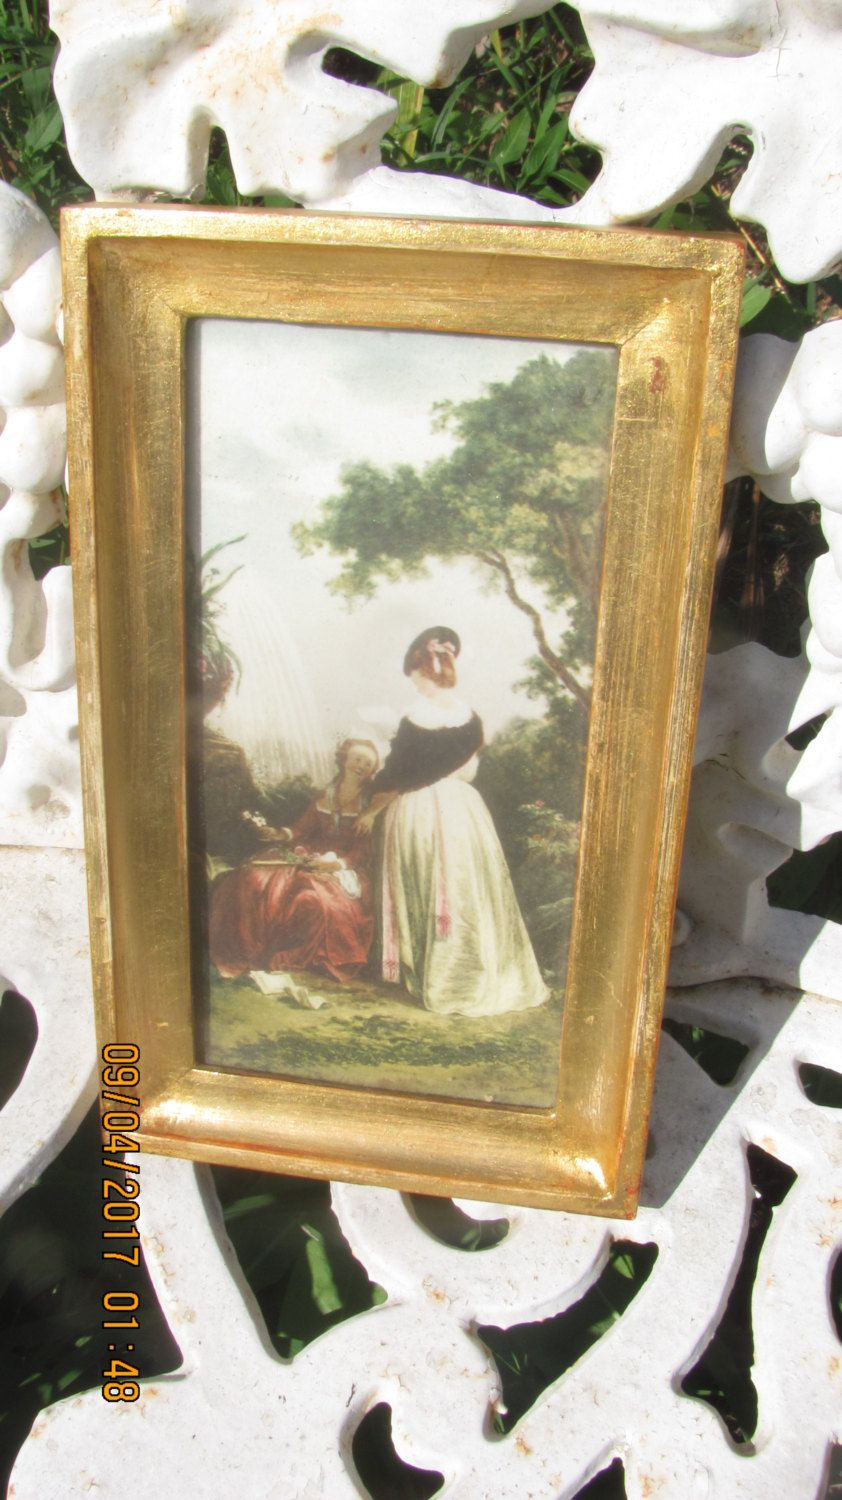 Reduced vtg italian wood framed victorian ladies outdoor garden reduced vtg italian wood framed victorian ladies outdoor garden setting print shabby gold tone picture frame jeuxipadfo Images